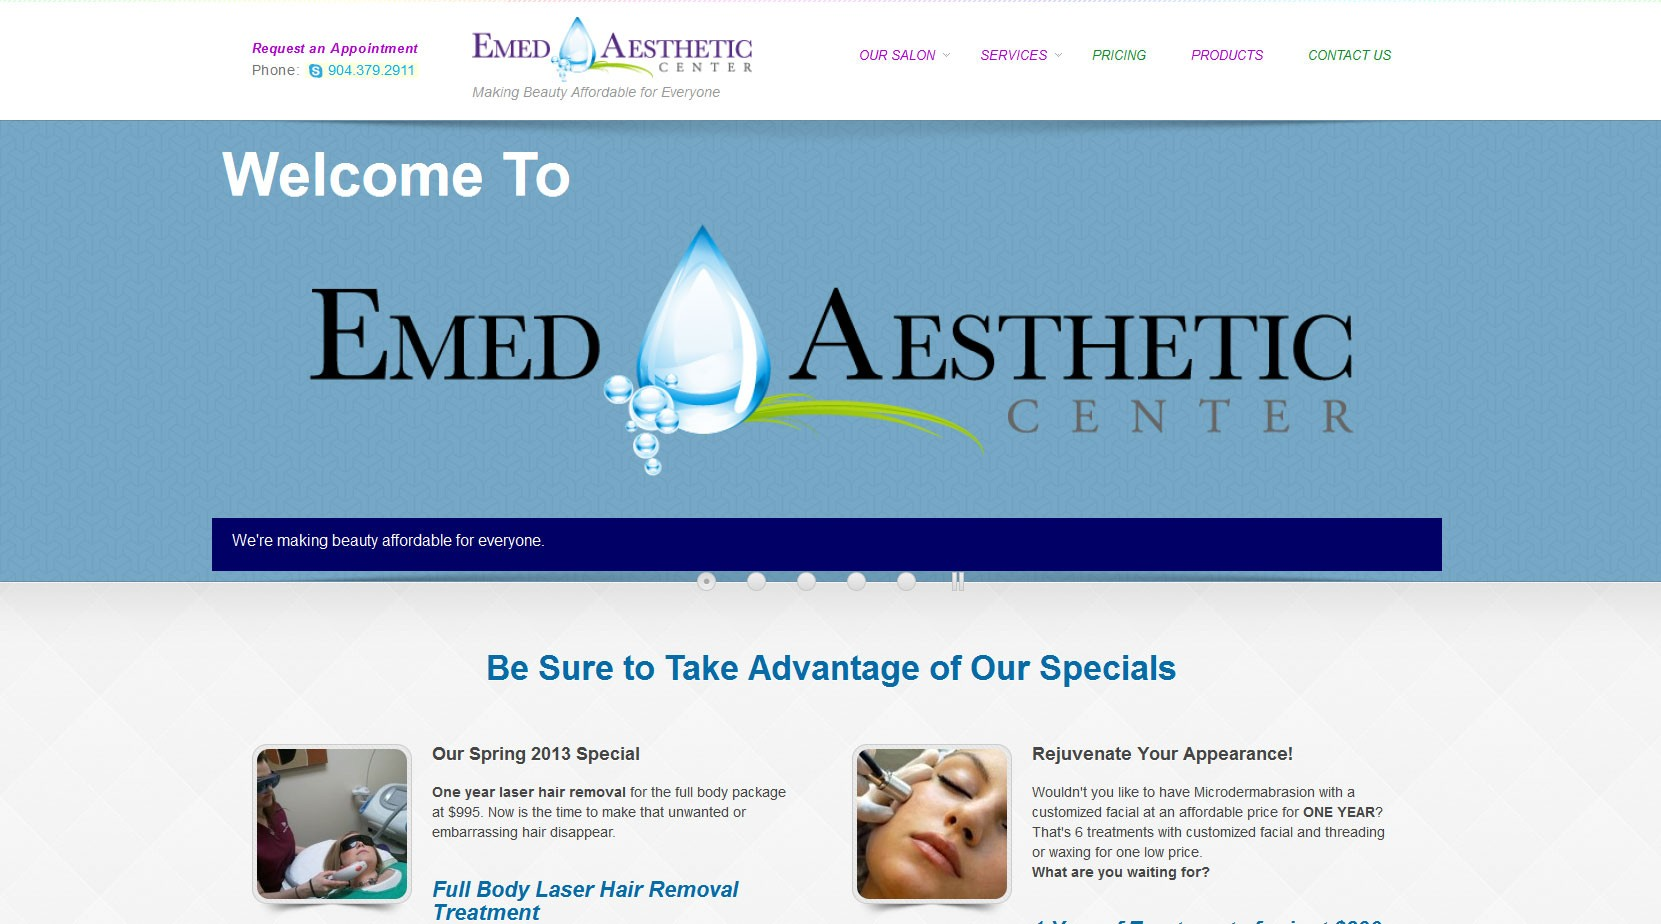 Emed Aesthetic Center Web Site